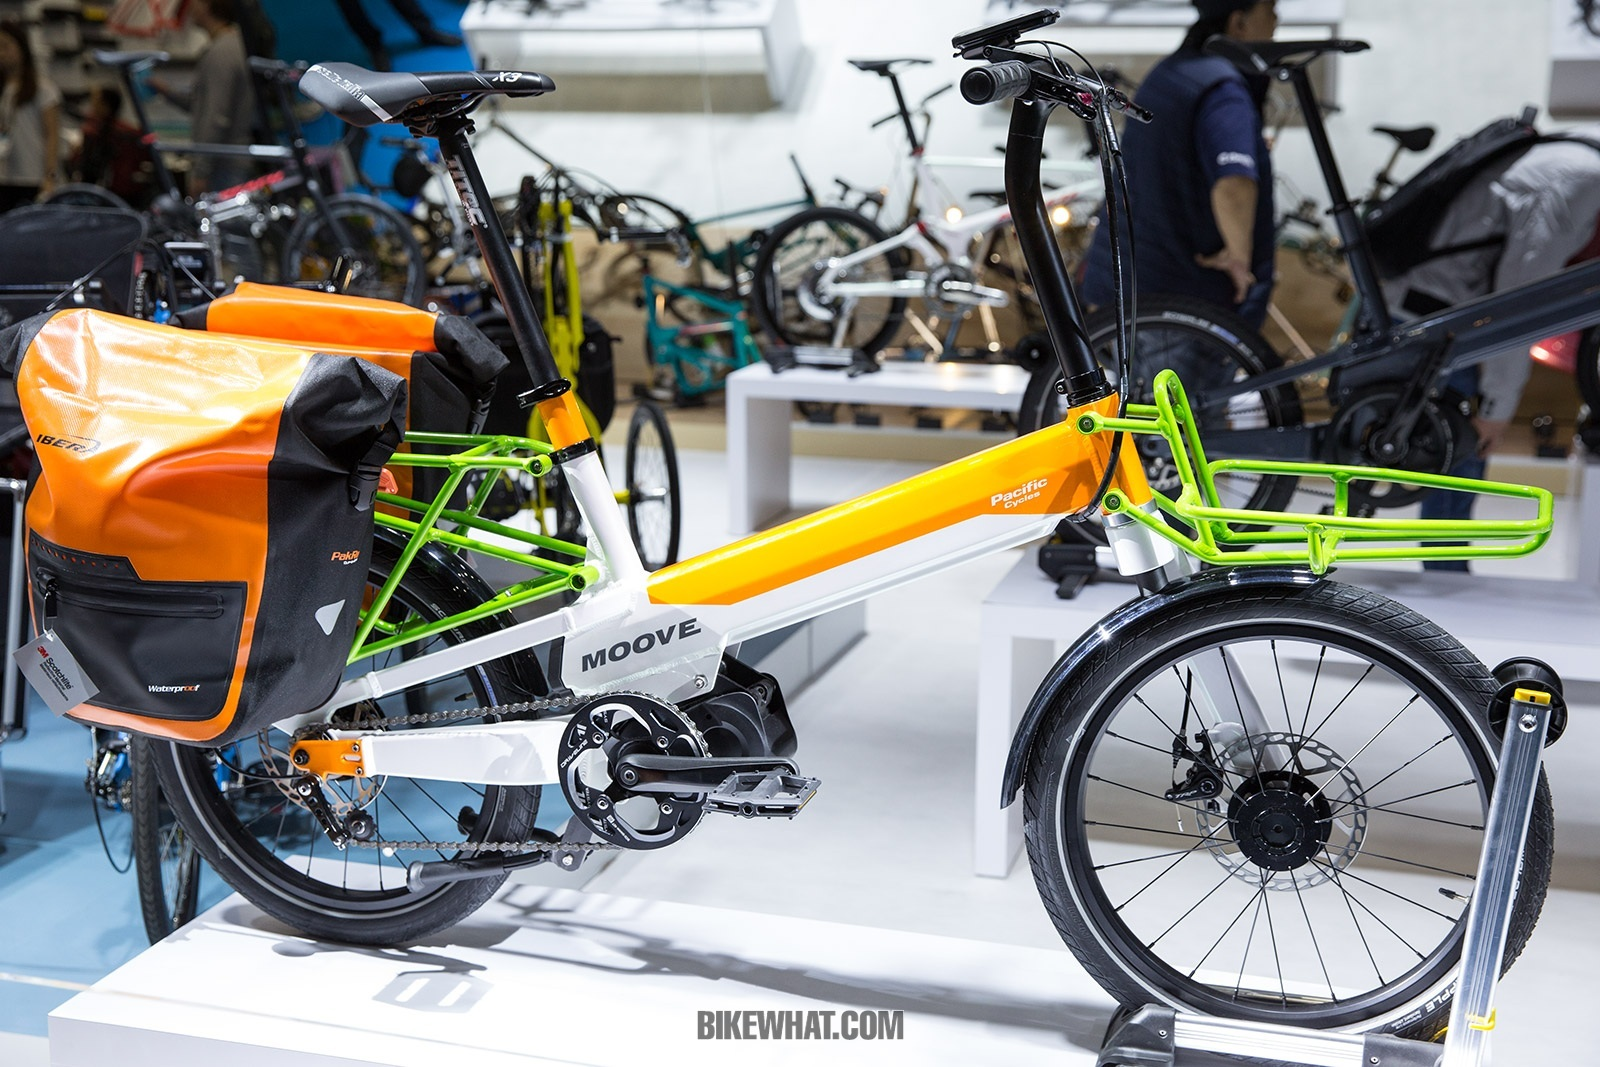 Feature_TaipeiCycle_2019_Moove_1.jpg